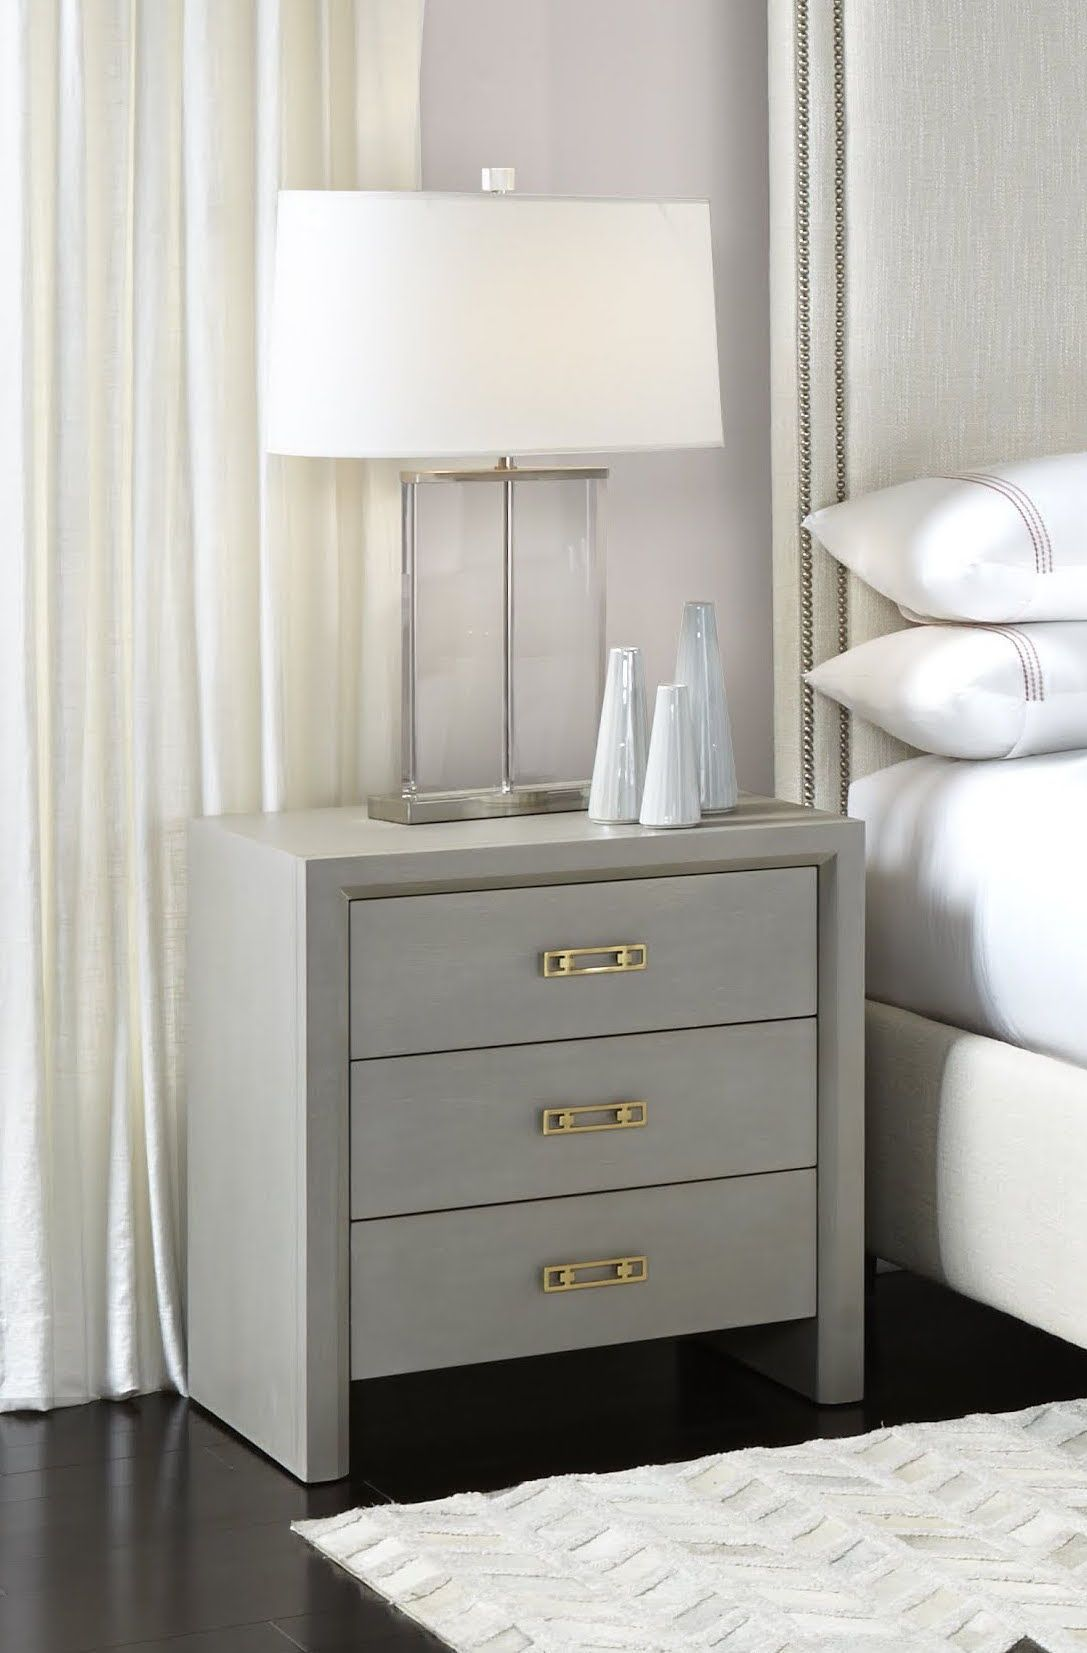 side table with drawer for bedroom on mg bw malibu 3 drawer bedside table channeling 70 s california modern style our malibu co modern bedroom decor grey bedroom night stands bedroom bed design mg bw malibu 3 drawer bedside table